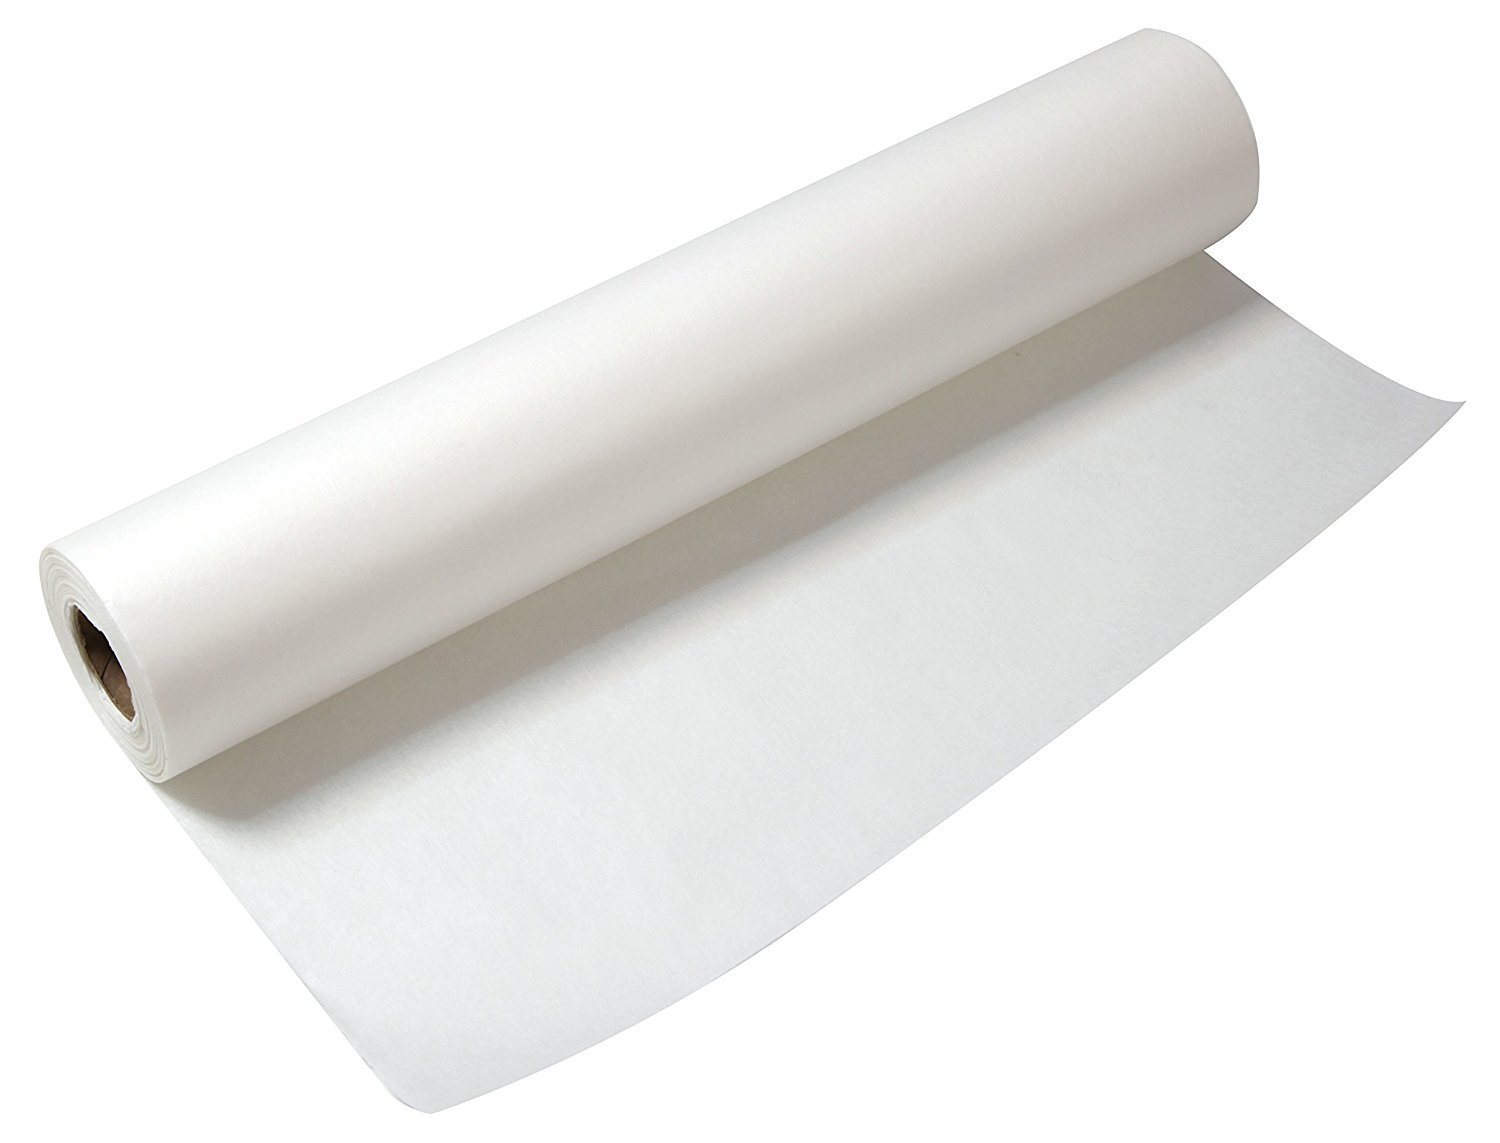 Set of 2 Alvin Lightweight White 18 x 20 Yards Tracing Paper Roll